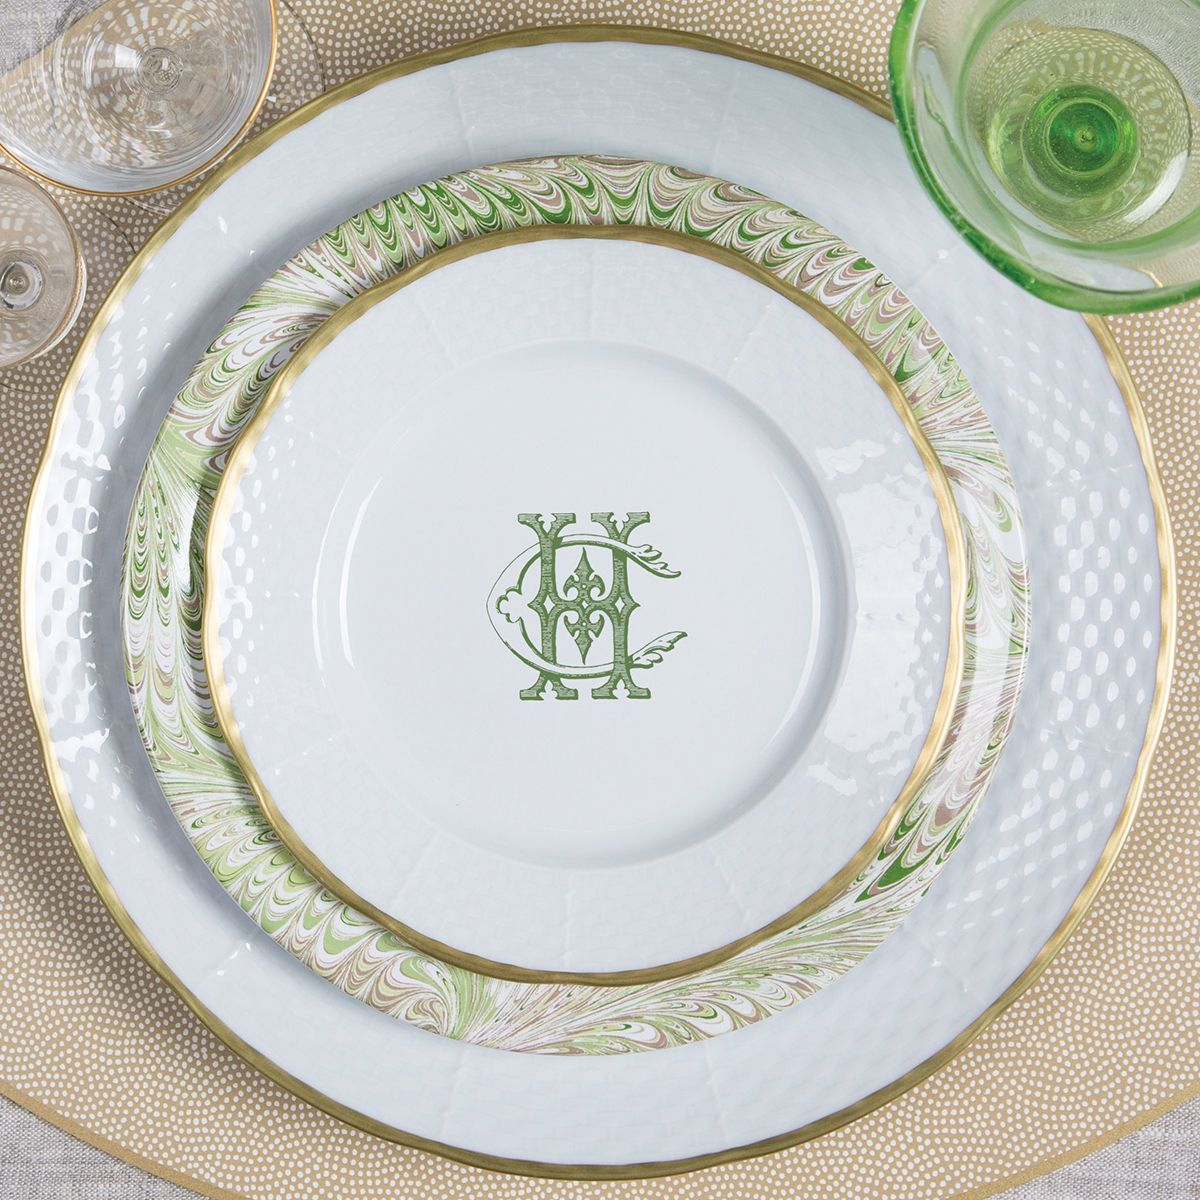 Dinner Plates That Start With Letter C